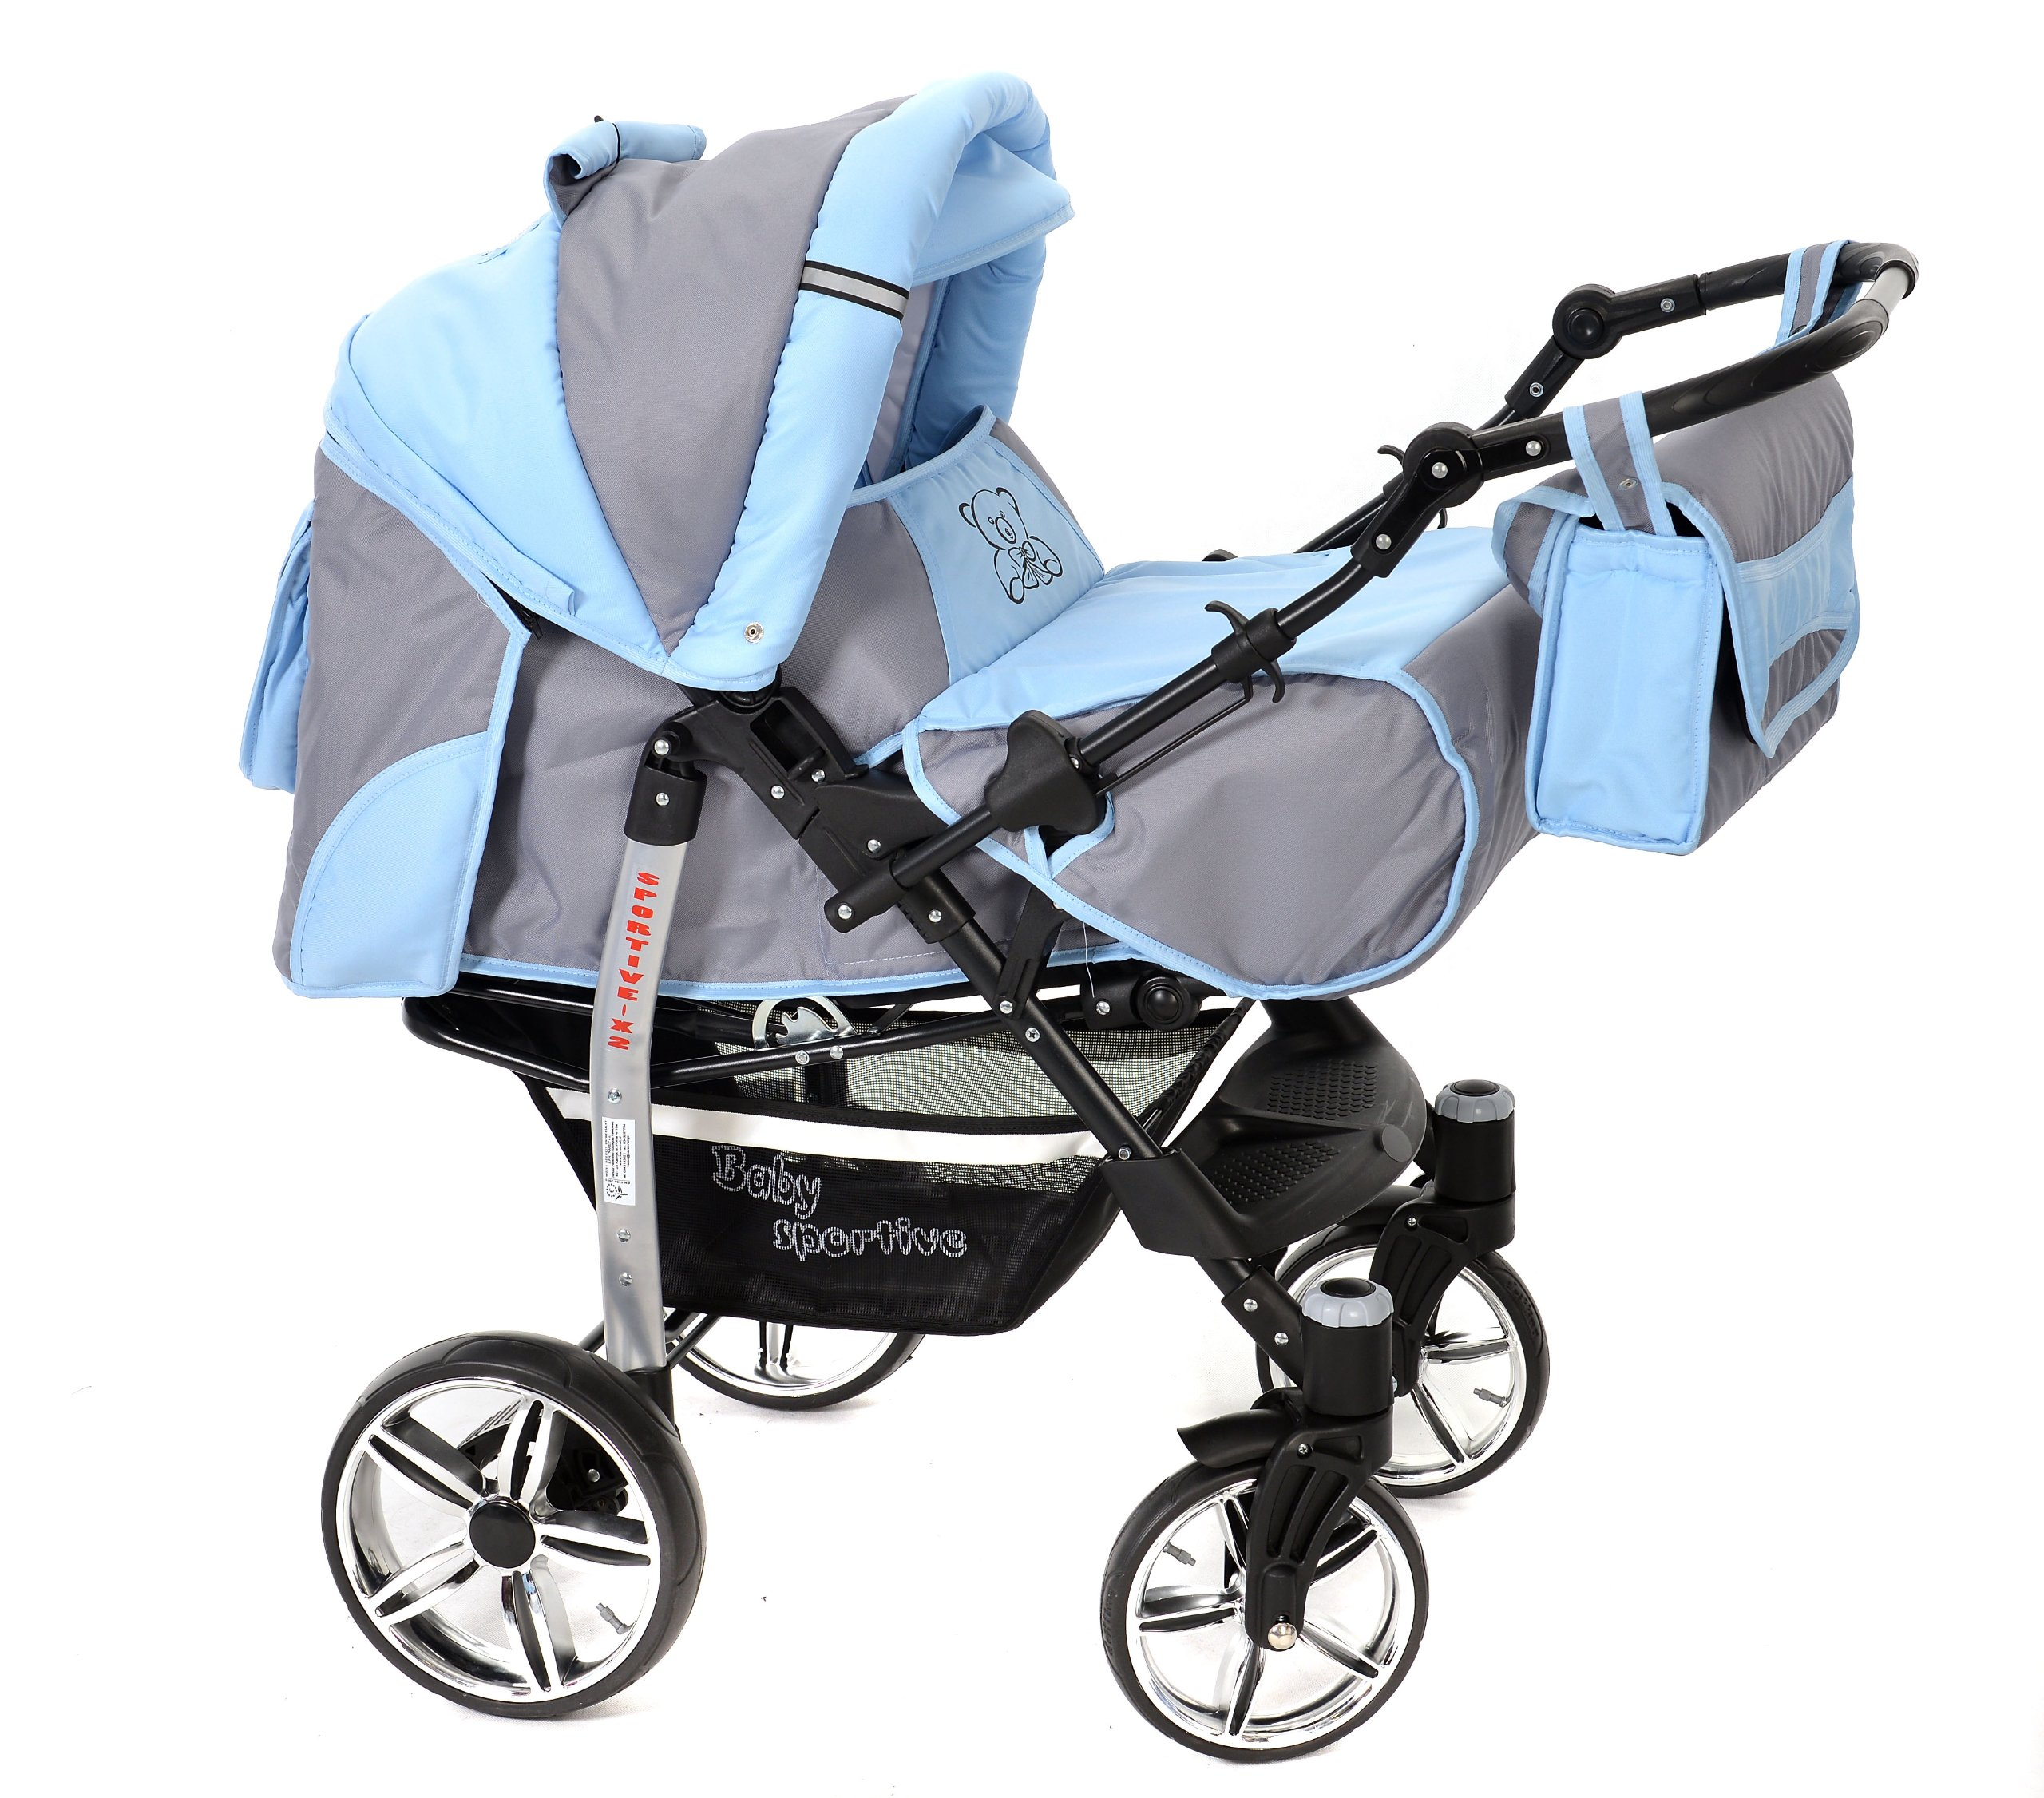 Sportive X2, 3-in-1 Travel System incl. Baby Pram with Swivel Wheels, Car Seat, Pushchair & Accessories (3-in-1 Travel System, Pale Grey & Blue)  3 in 1 Travel System All in One Set - Pram, Car Carrier Seat and Sport Buggy + Accessories: carrier bag, rain protection, mosquito net, changing mat, removable bottle holder and removable tray for your child's bits and pieces Suitable from birth, Easy Quick Folding System; Large storage basket; Turnable handle bar that allows to face or rear the drive direction; Quick release rear wheels for easy cleaning after muddy walks Front lockable 360o swivel wheels for manoeuvrability , Small sized when folded, fits into many small car trunks, Carry-cot with a removable hood, Reflective elements for better visibility 2